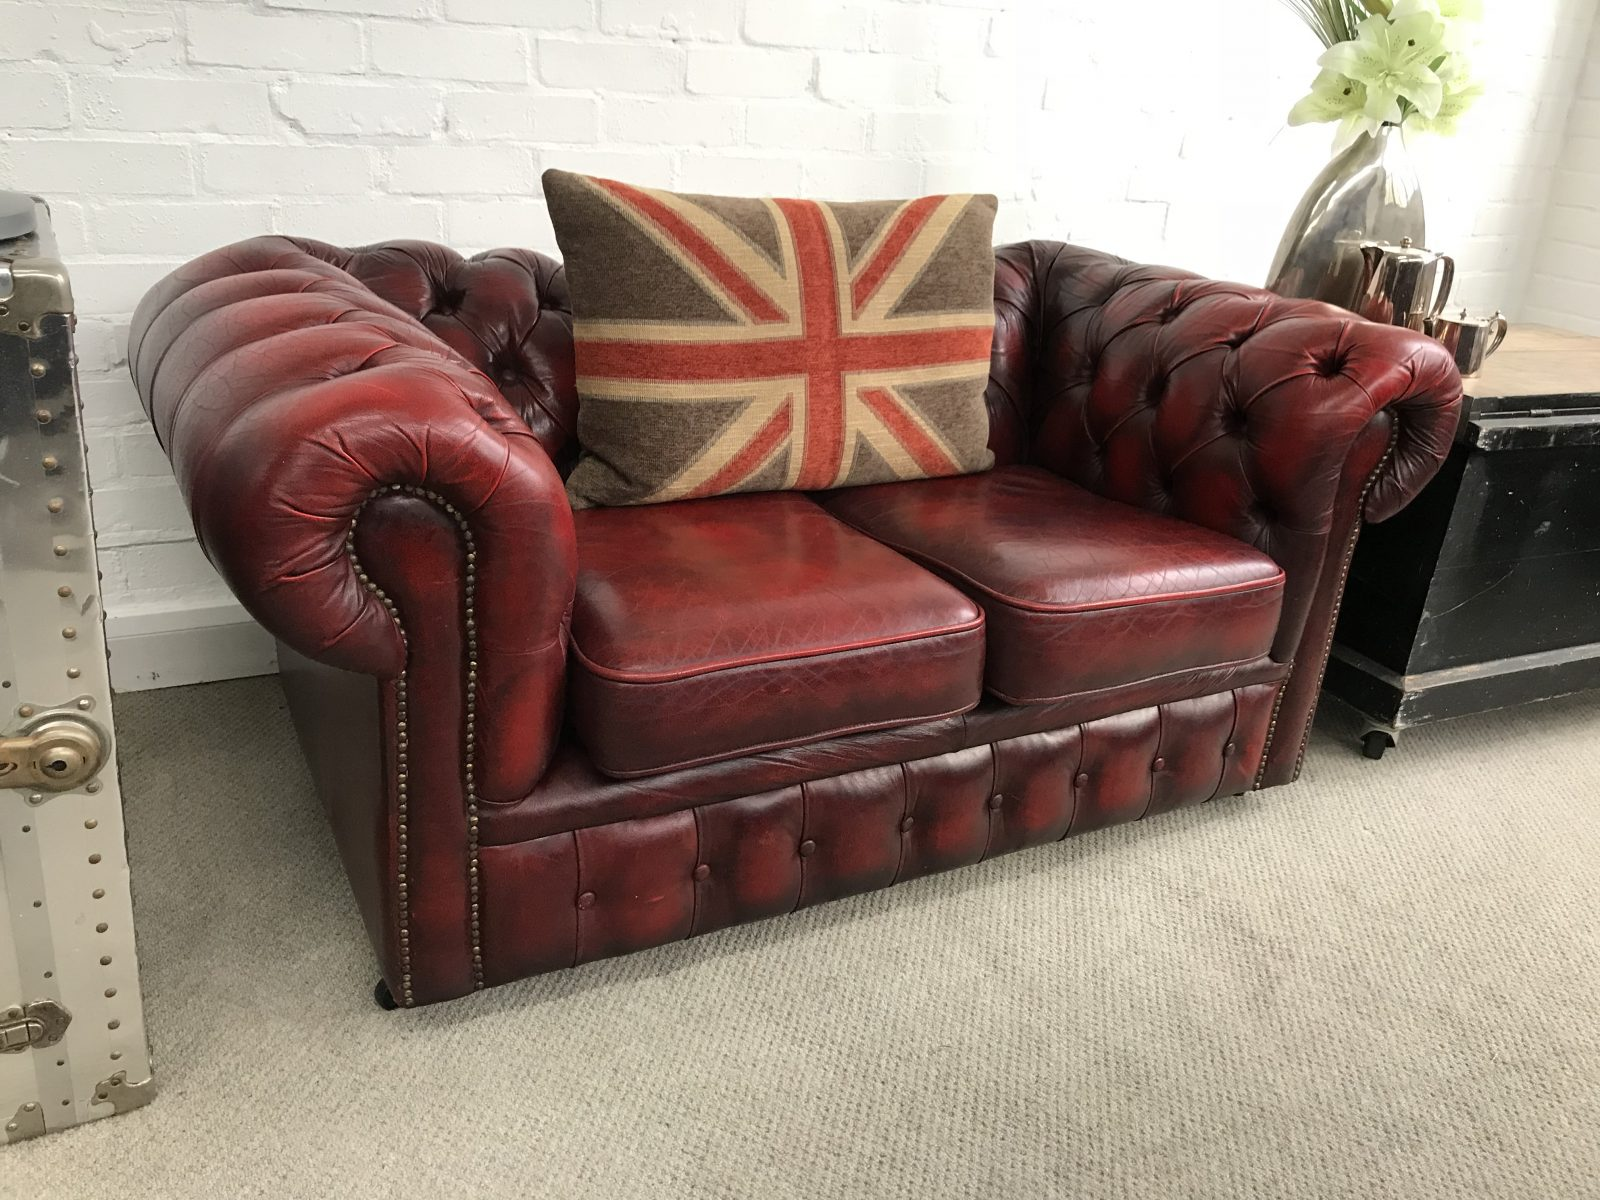 Oxblood 2 Seater Chesterfield Sofa Home